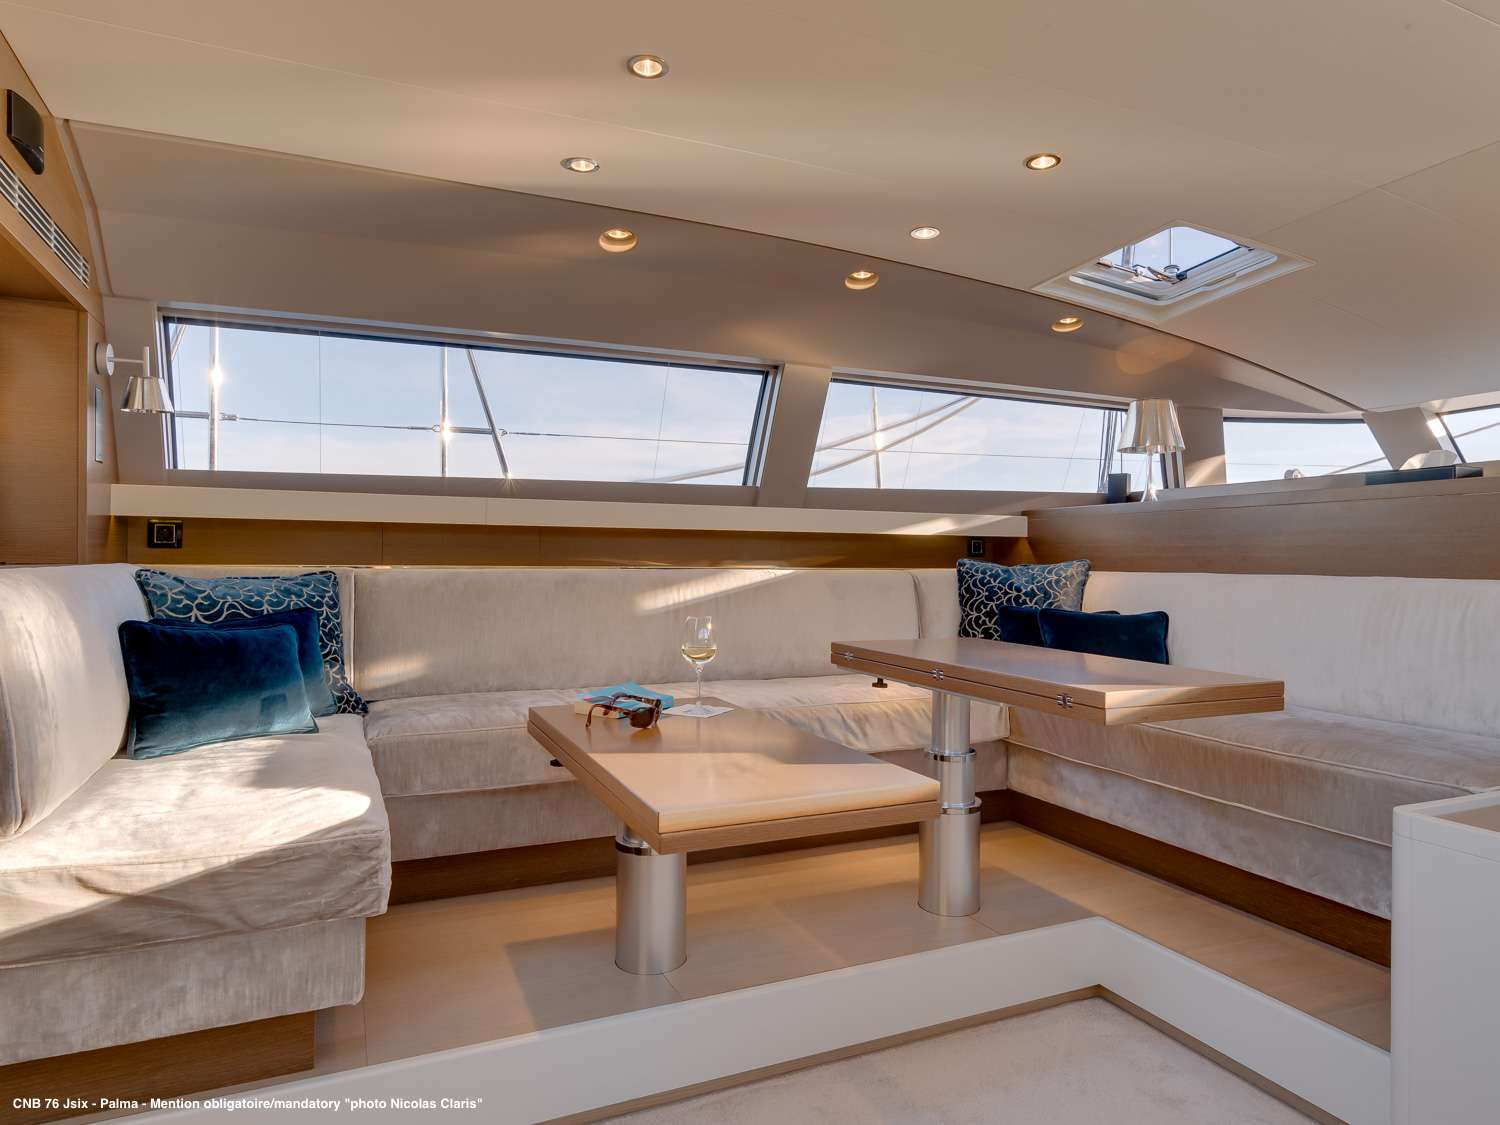 Sail Yacht 'Sail', 6 PAX, 3 Crew, 76.00 Ft, 23.00 Meters, Built 2016, CNB Bordeaux, Refit Year